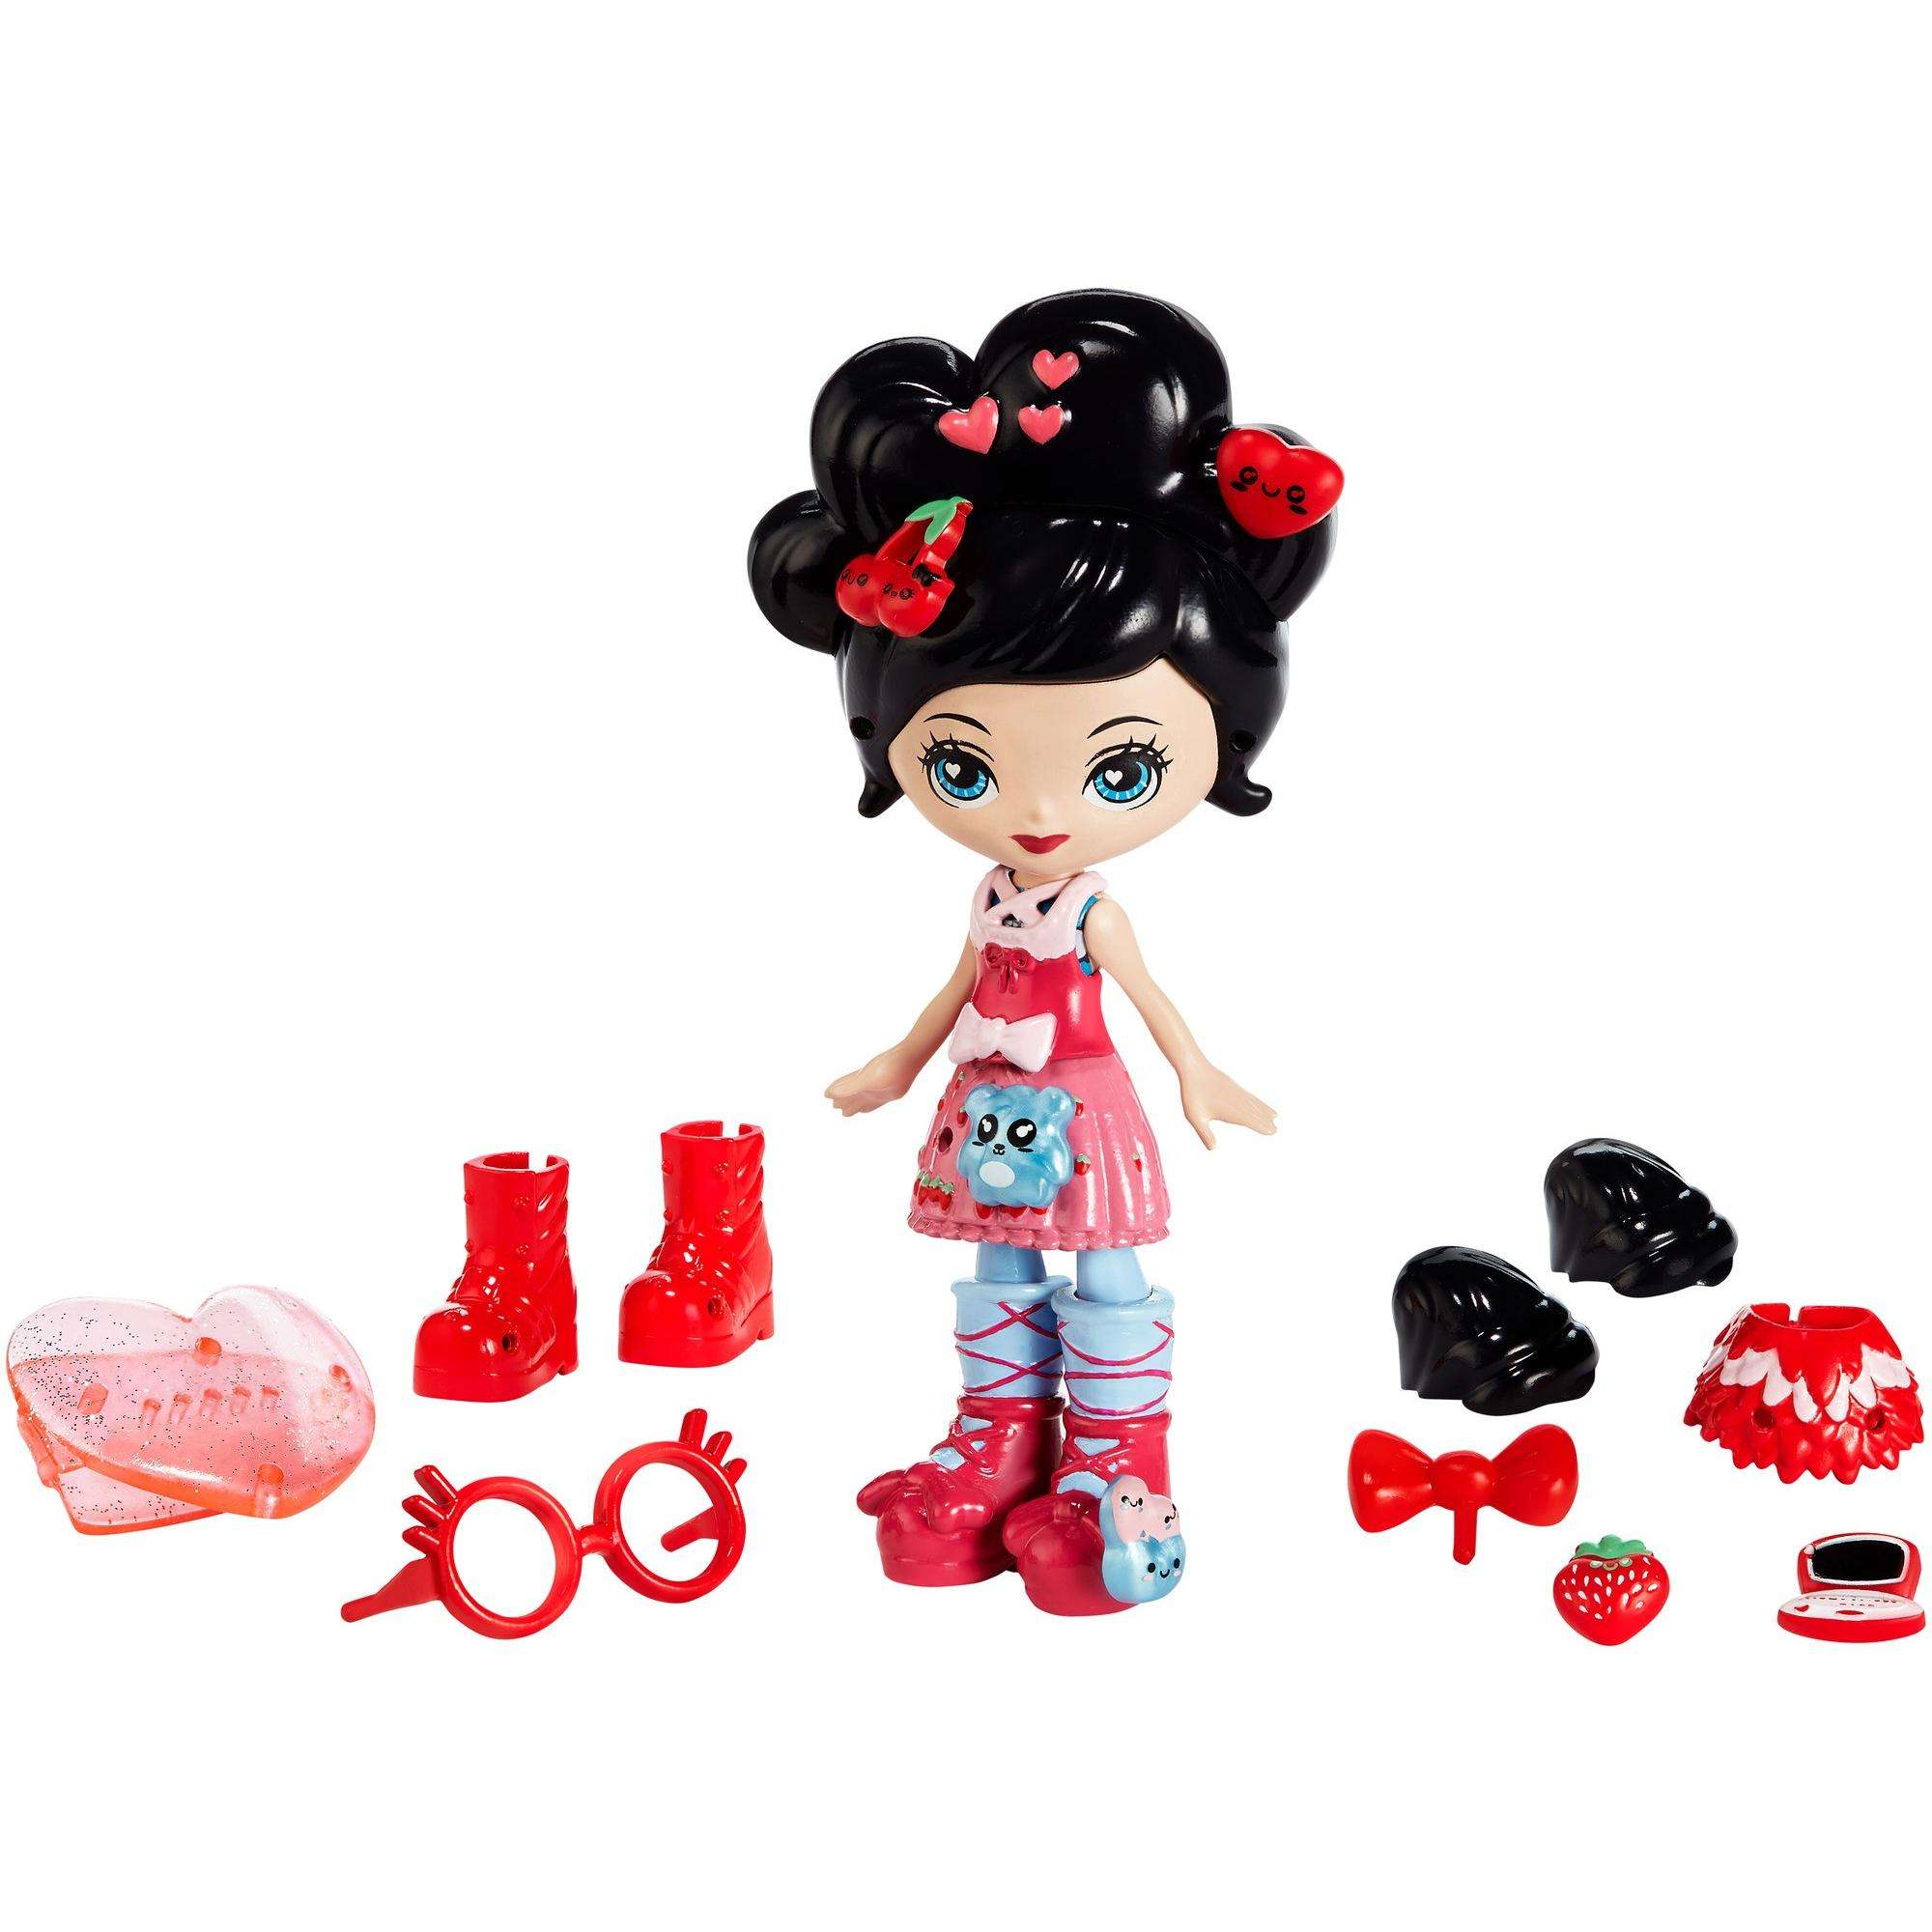 Kuukuu Harajuku Love: Fashion Swap Fun